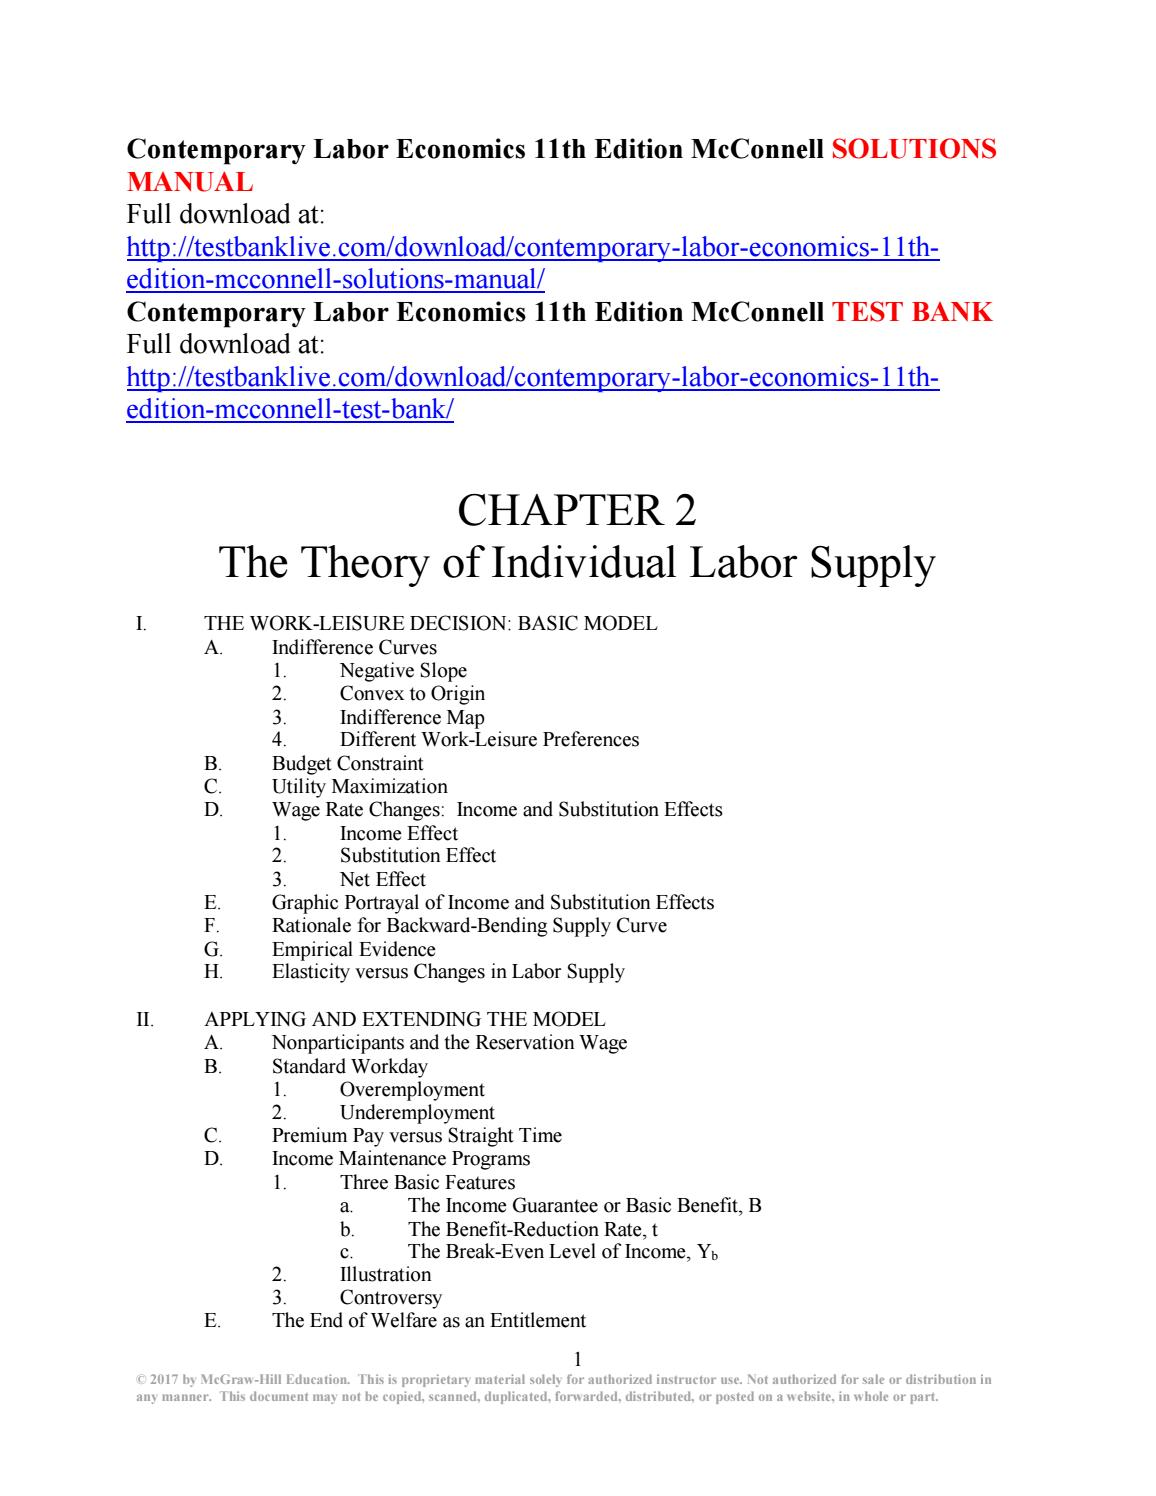 Contemporary labor economics 11th edition mcconnell solutions manual by  Aurora1234 - issuu